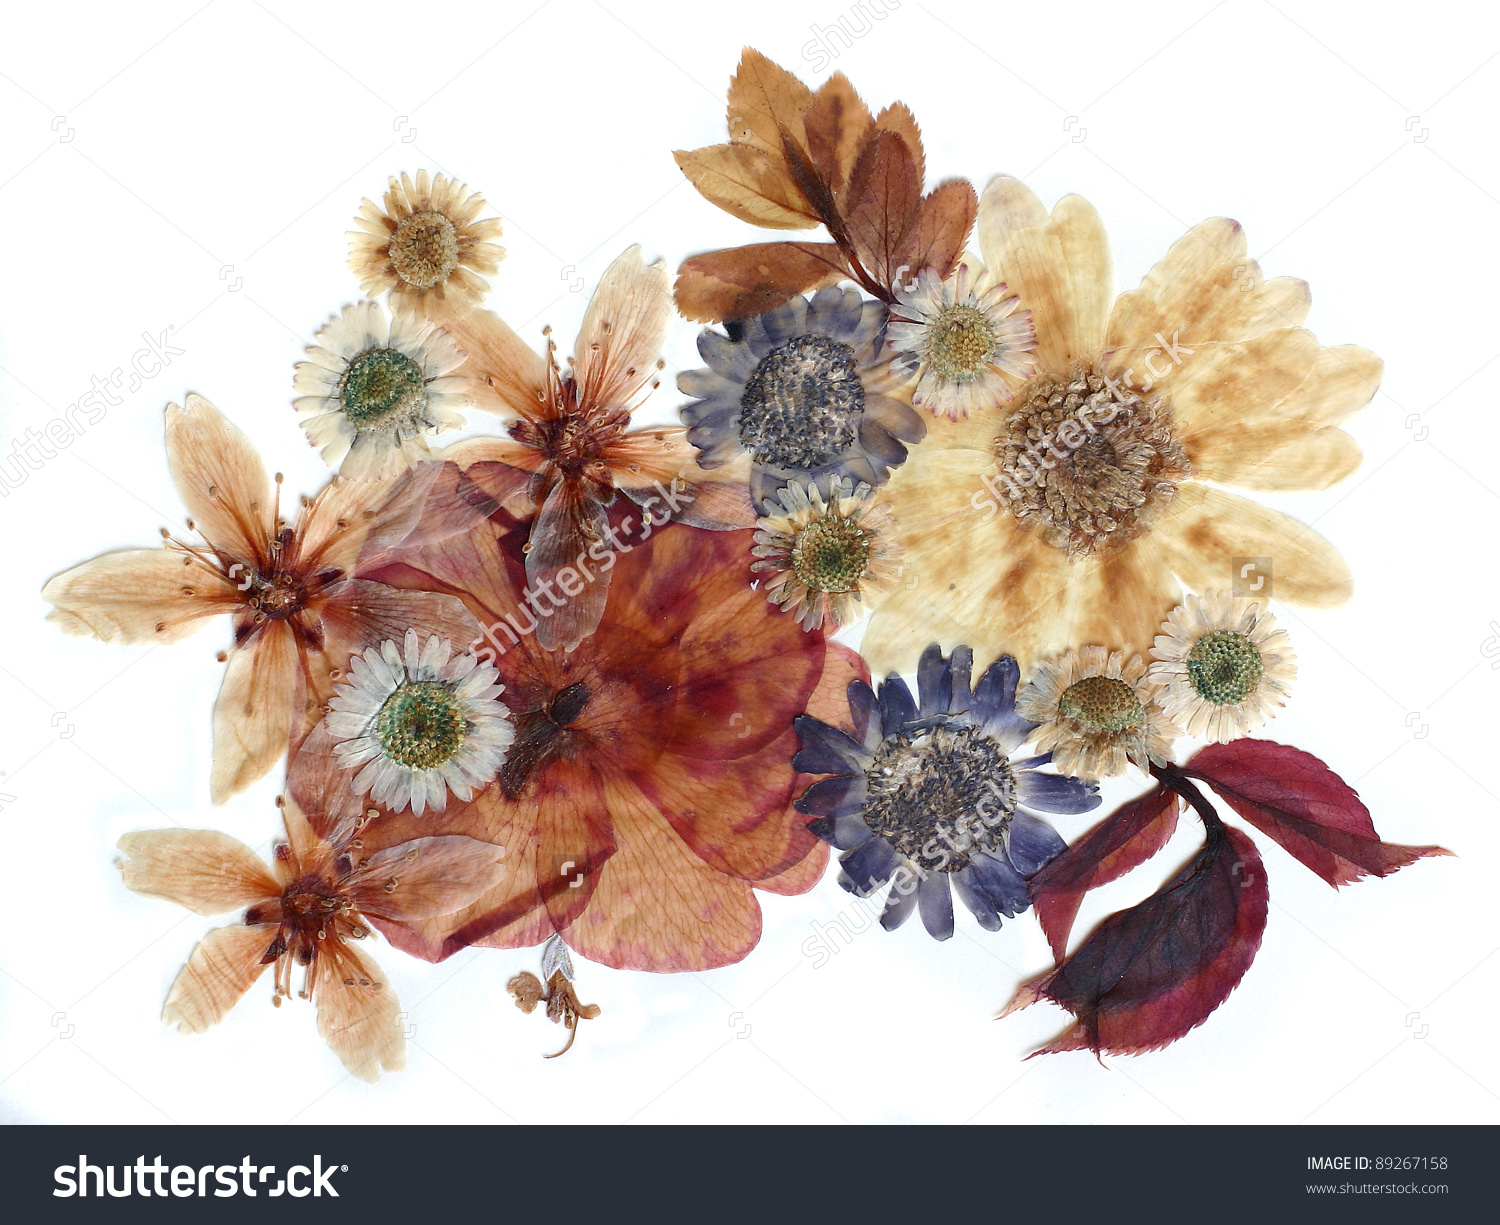 dried flower clipart